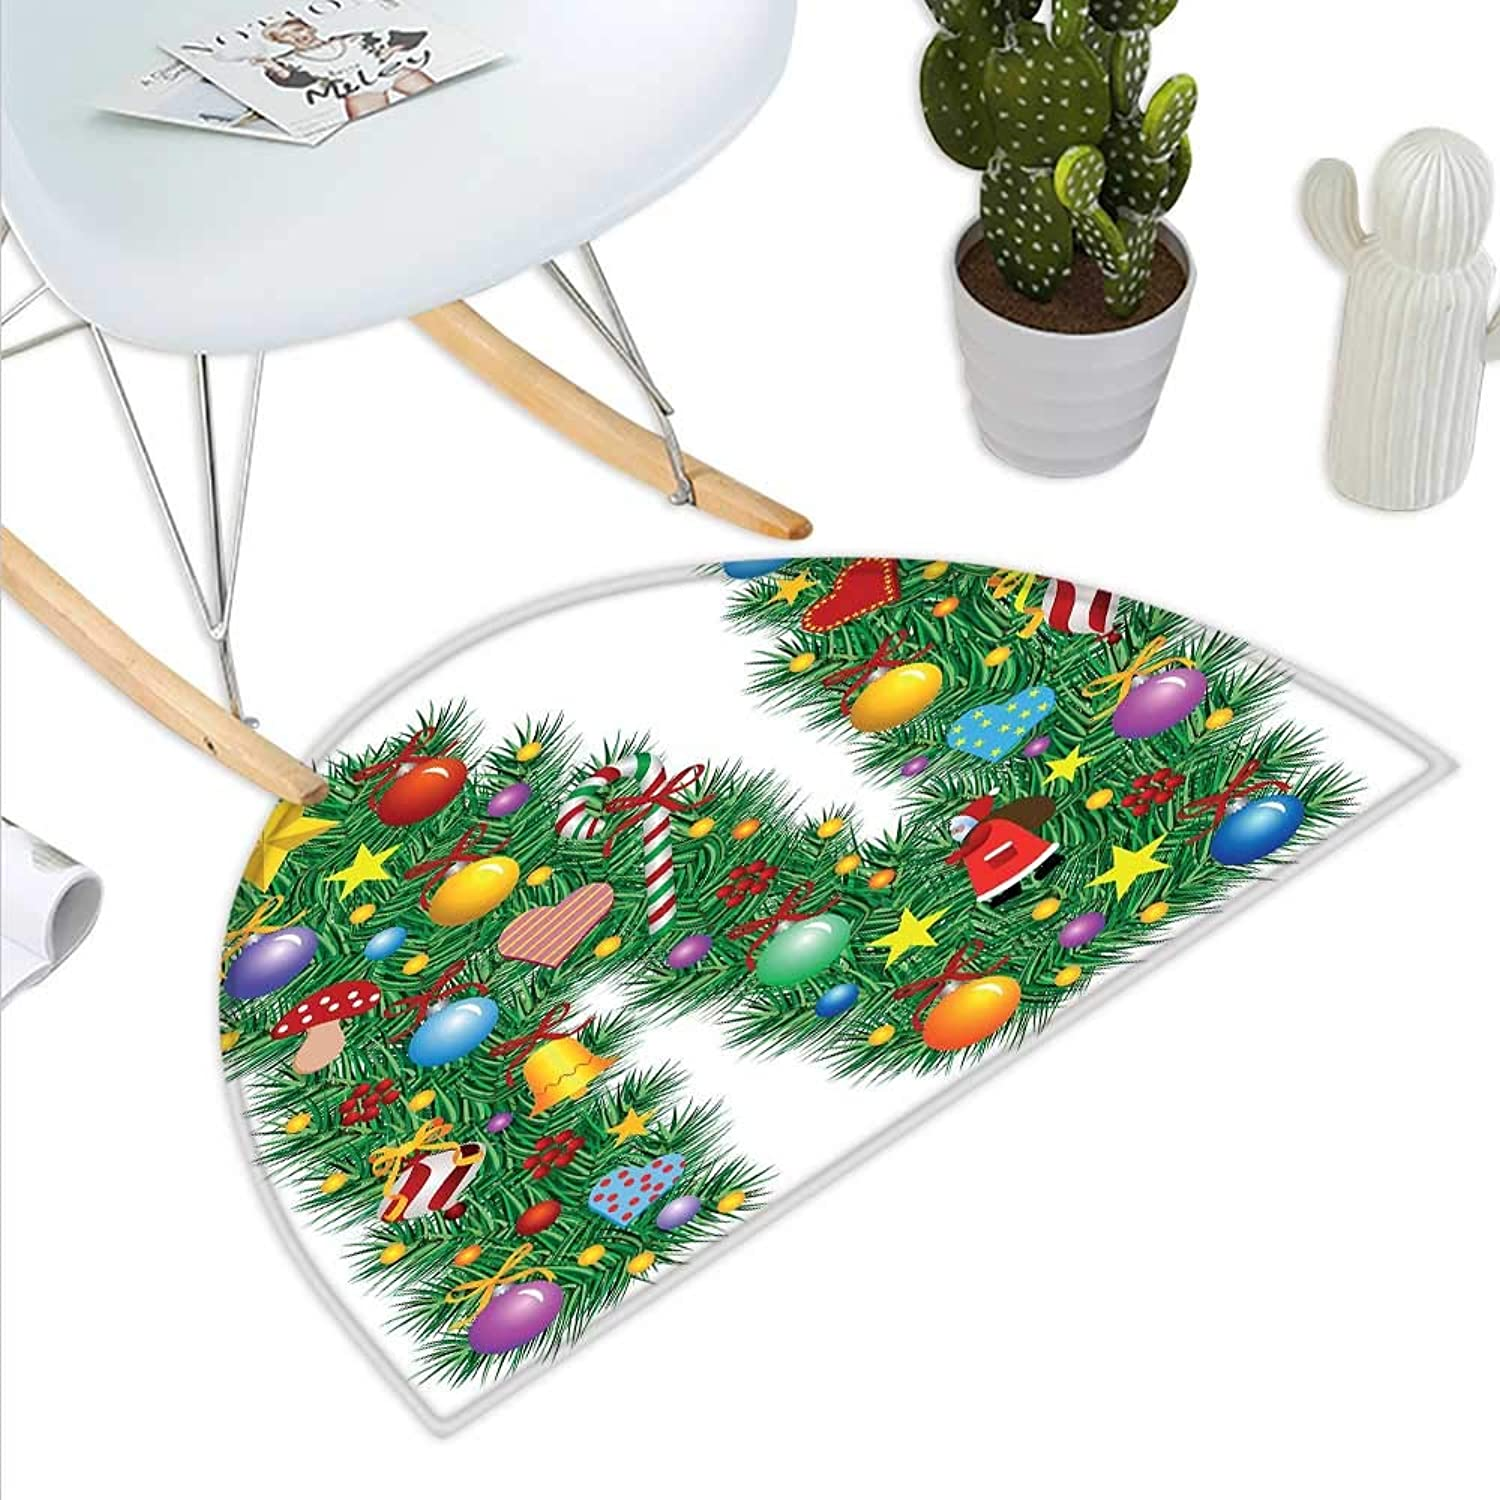 Letter N Semicircle Doormat Capital N in Green color with Coniferous Leaves Bells Bowknots Hearts and Stars Halfmoon doormats H 39.3  xD 59  Multicolor